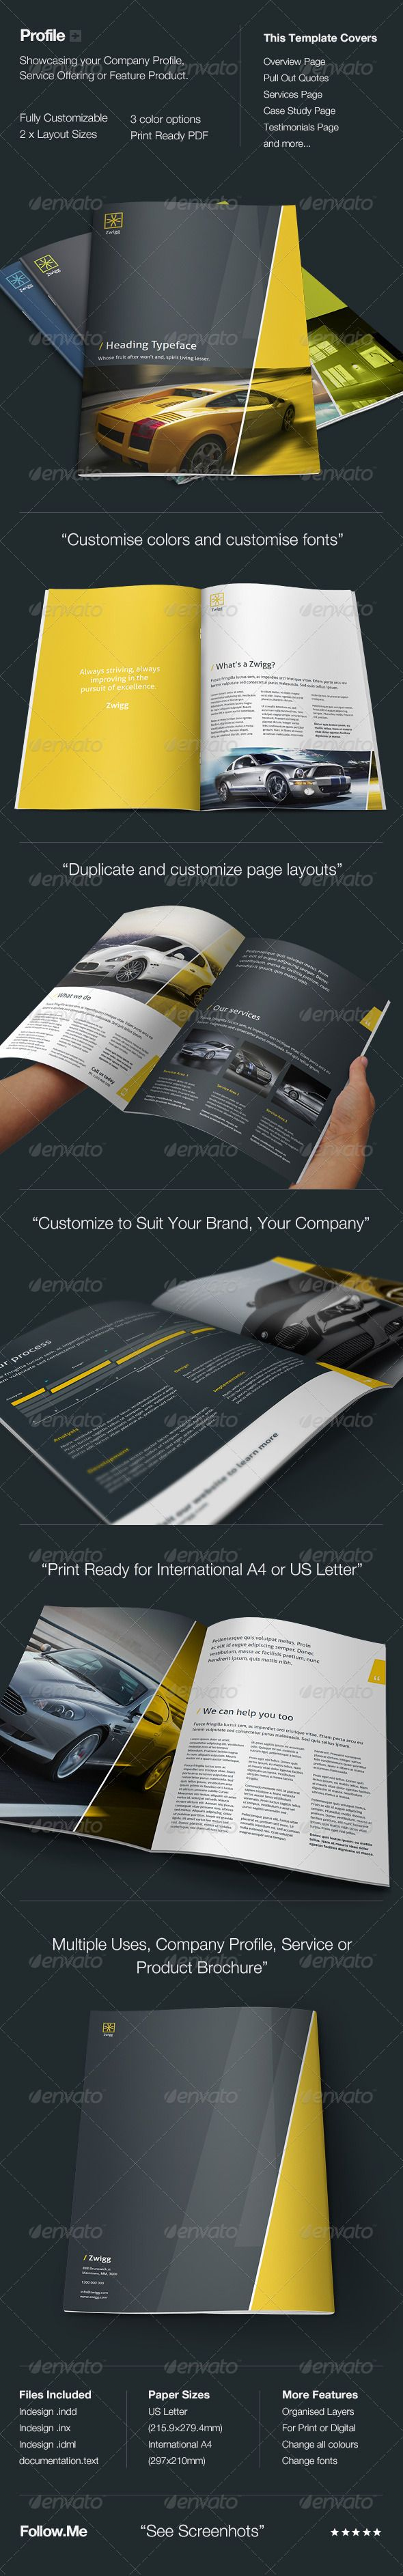 Example Of Company Profile Template Interesting 17 Best Desing Ideas Images On Pinterest  Annual Reports Editorial .